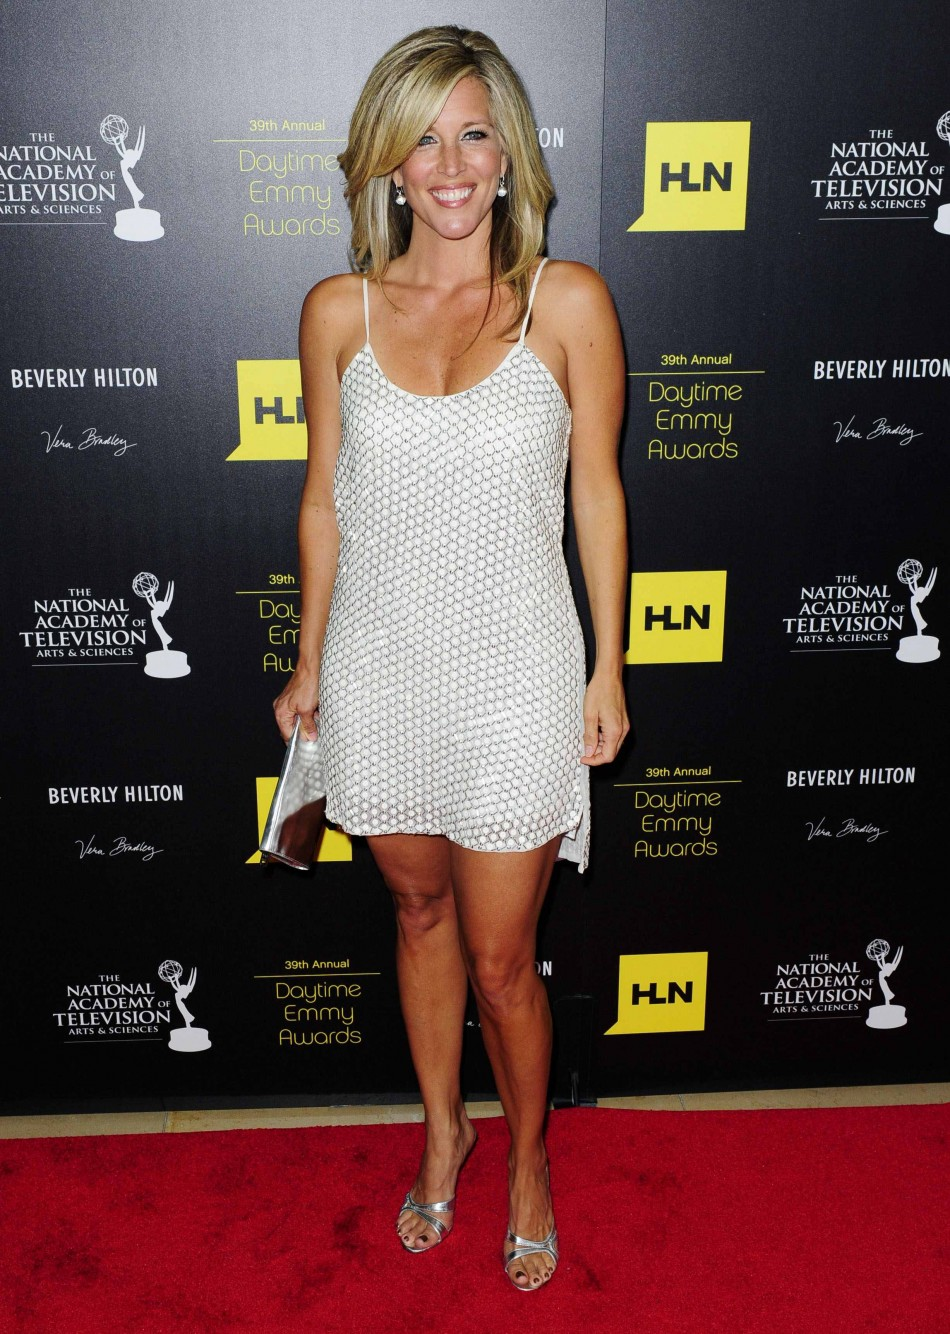 Actress Laura Wright arrives at the 39th Daytime Emmy Awards in Beverly Hills